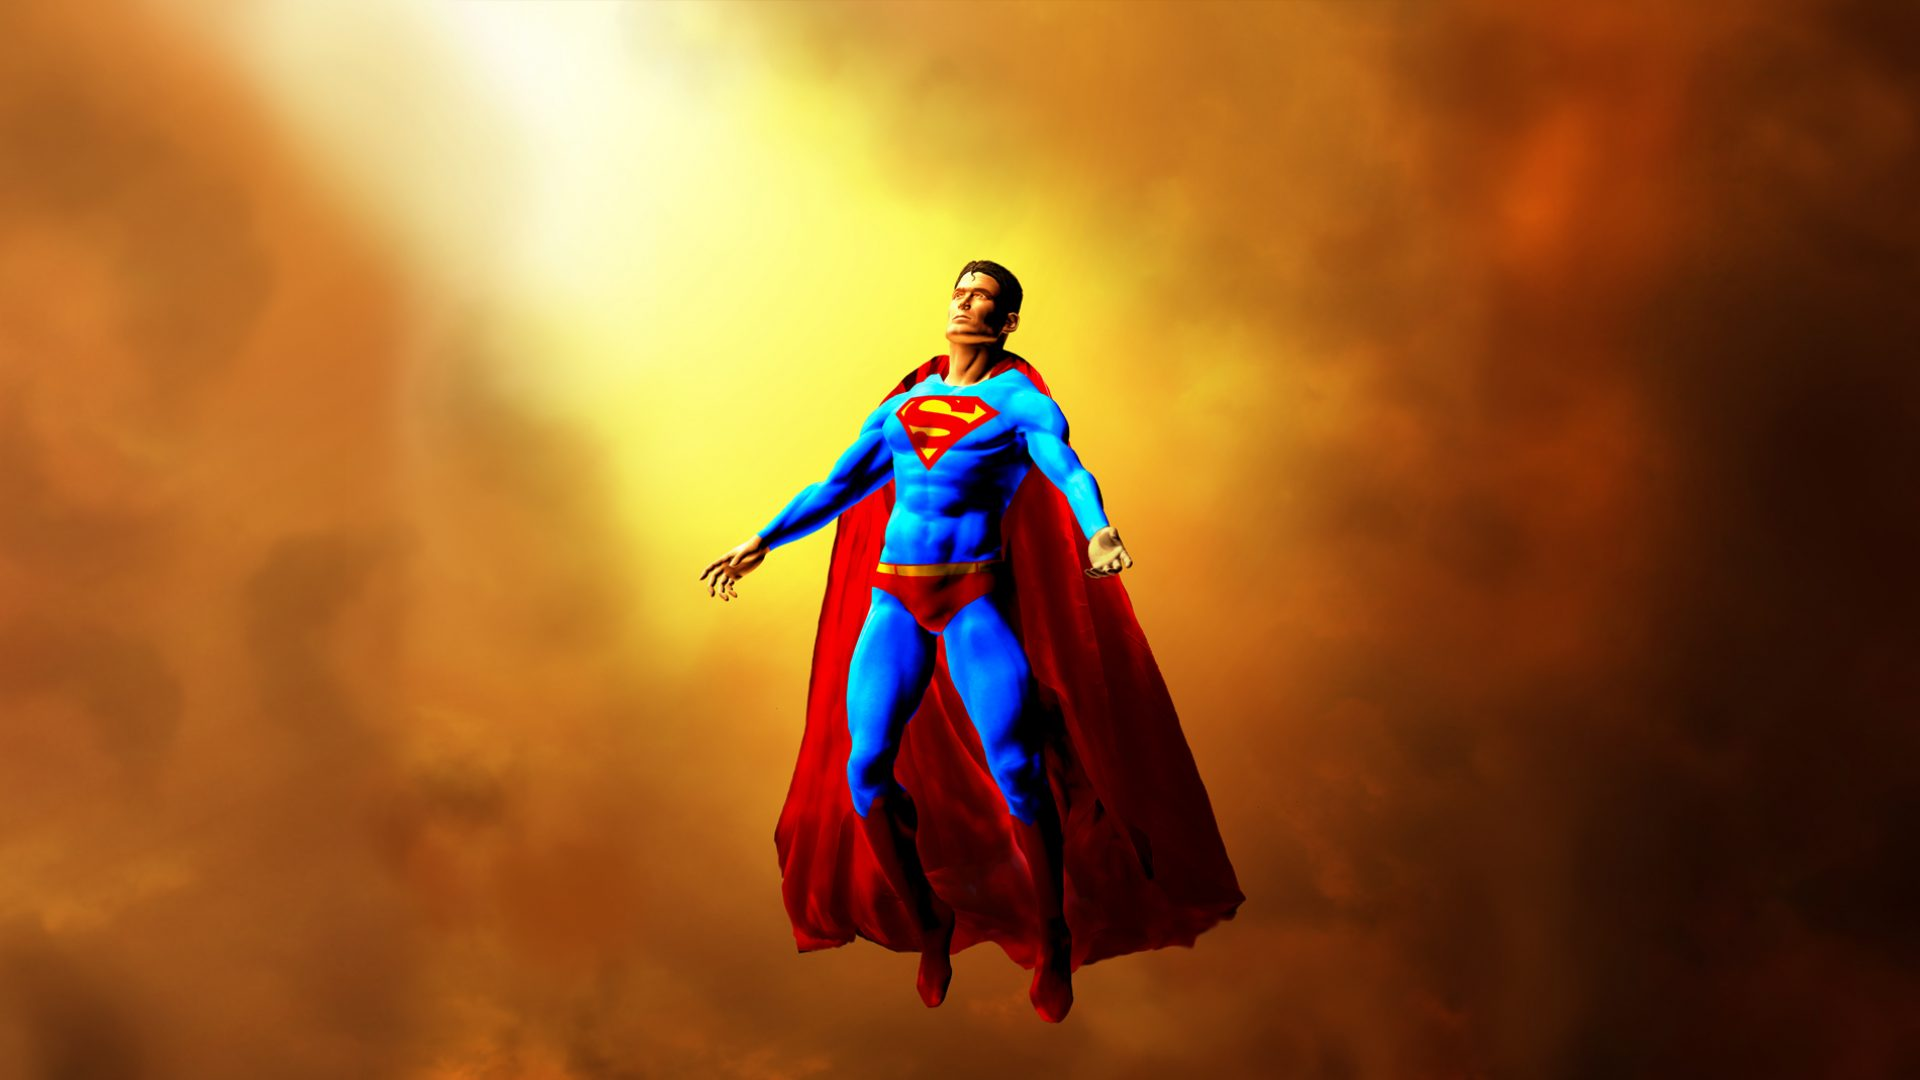 Superman 3d 1920x1080 fondos de pantalla y wallpapers for Fondos animados 3d